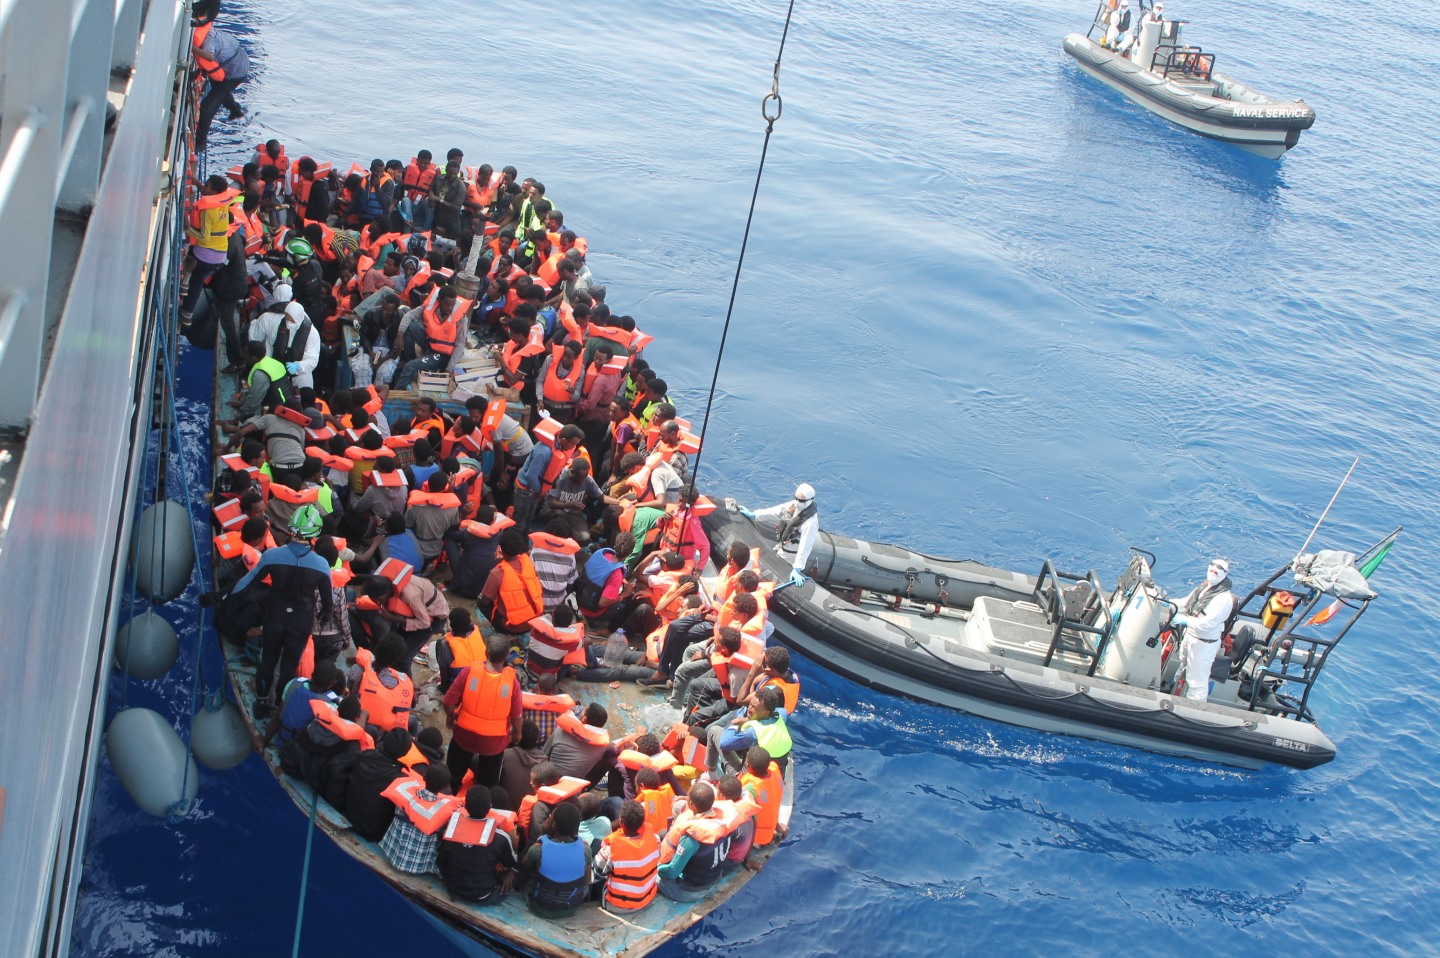 Irish Naval personnel from the LÉ Eithne (P31) rescuing migrants as part of Operation Triton